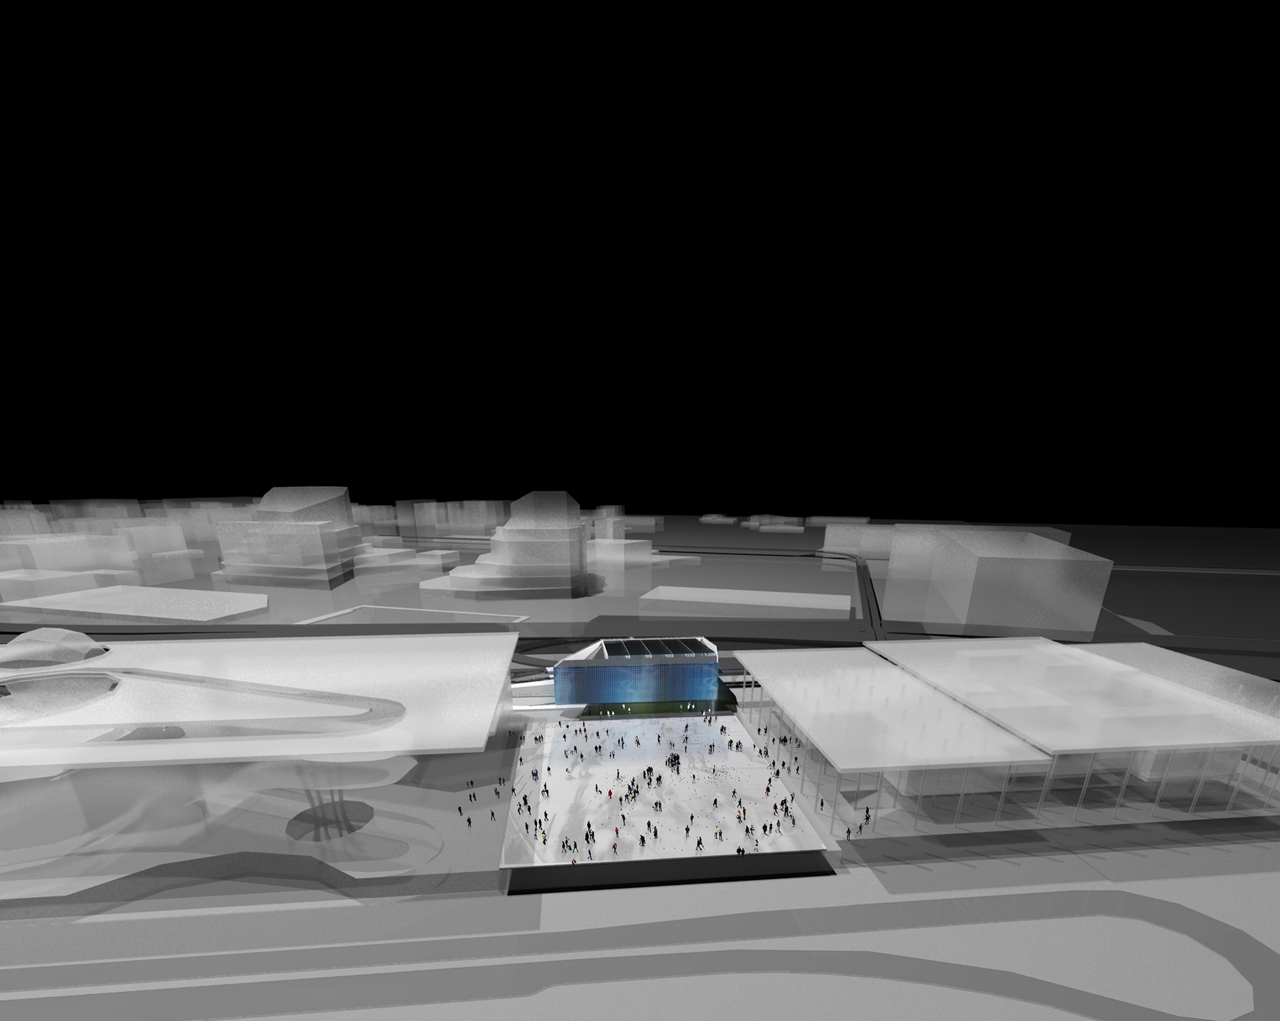 Best Image Miami Metromover Station Competition Proposal / Office-247